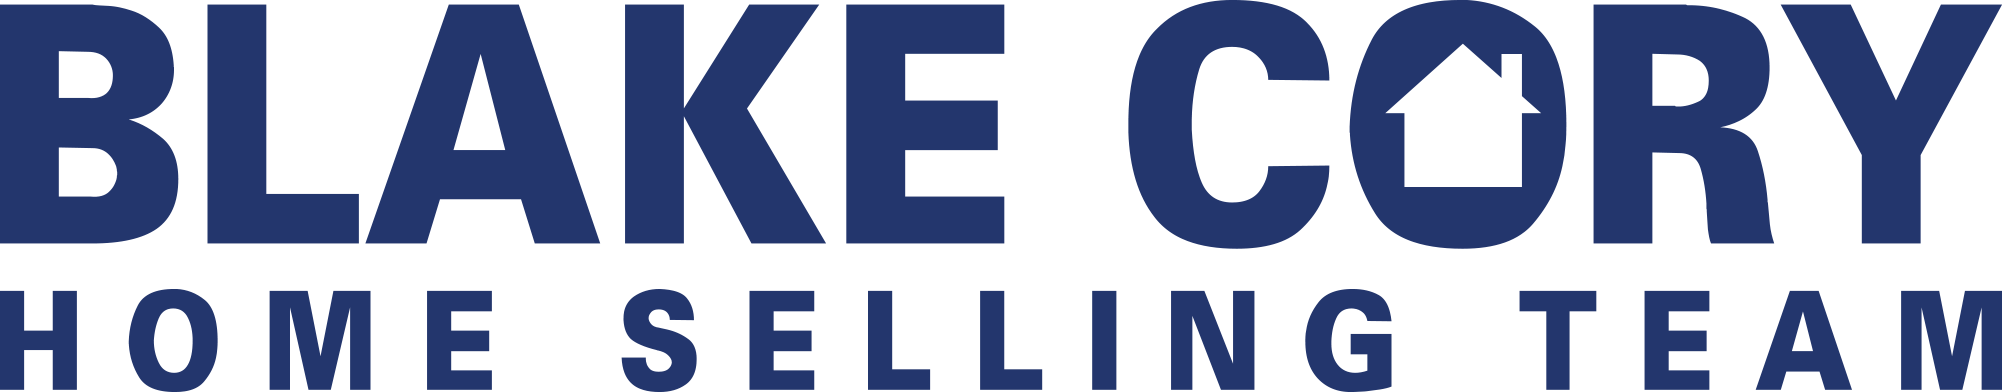 The Blake Cory Home Selling Team logo